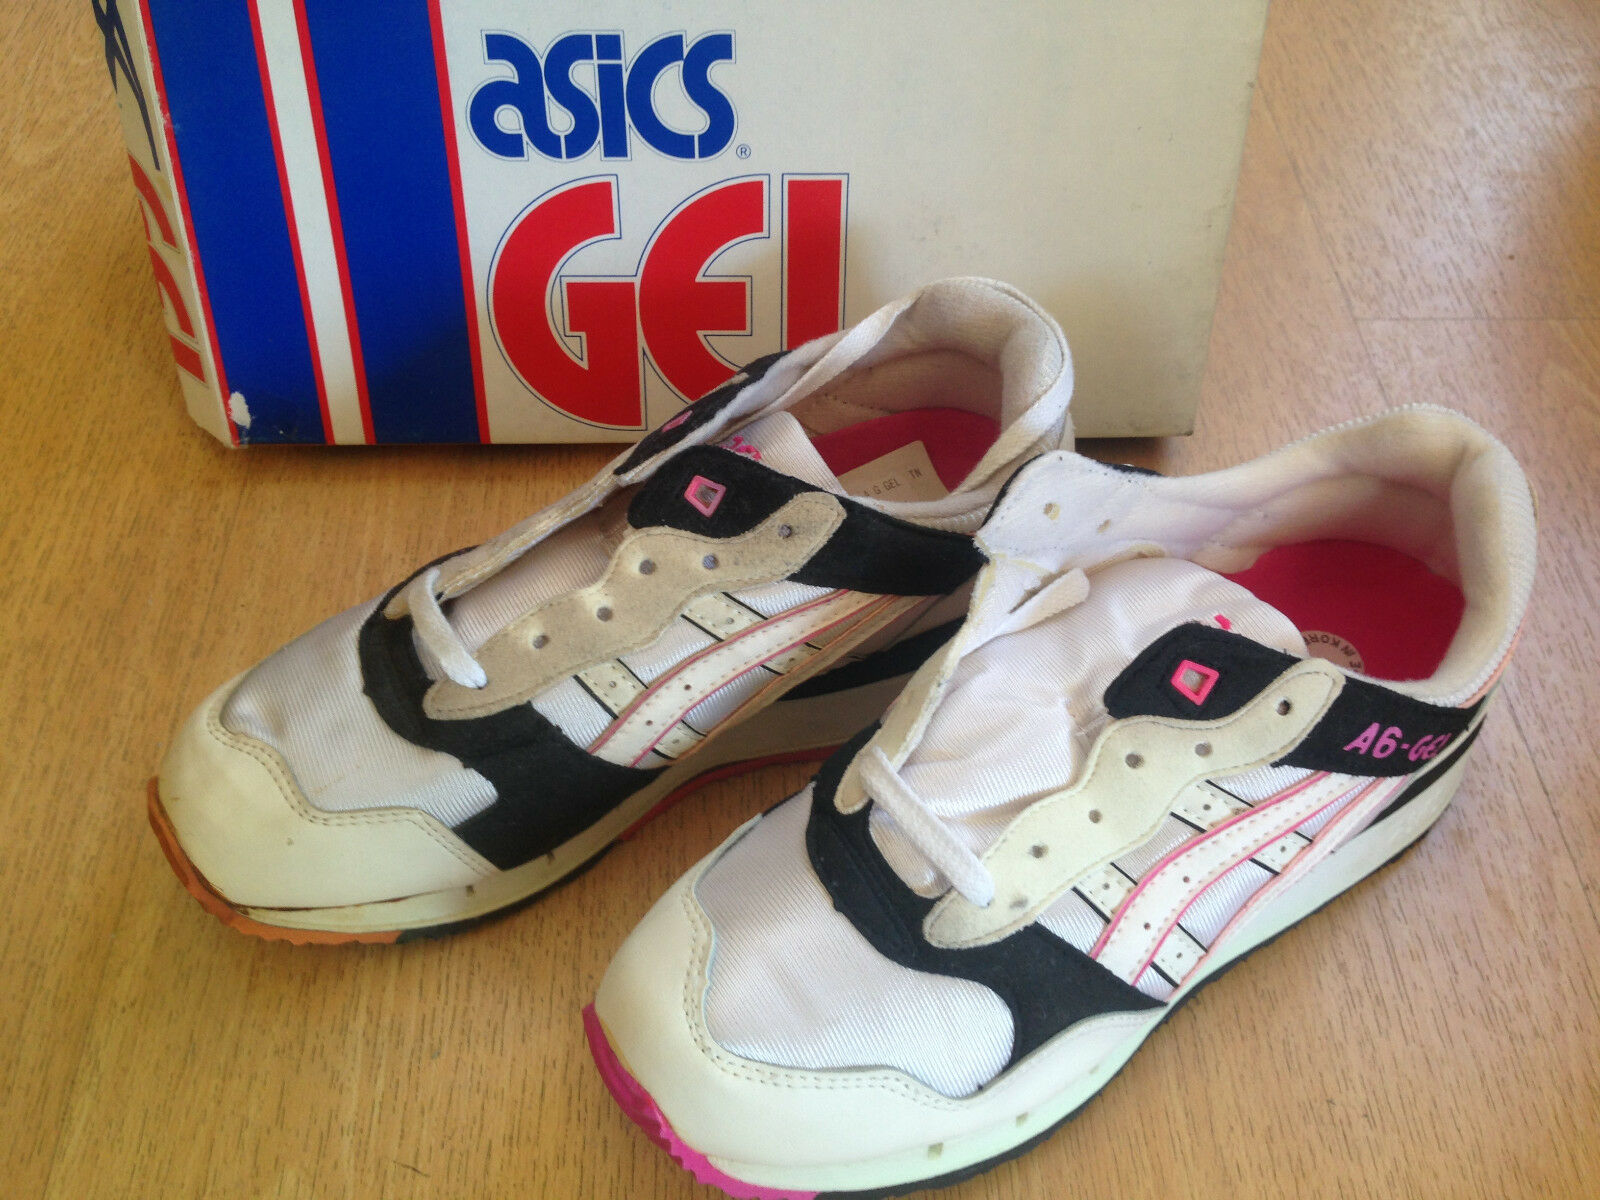 OG 1990s Asics A6-GEL sneakers Taille US7 TN-82 RARE